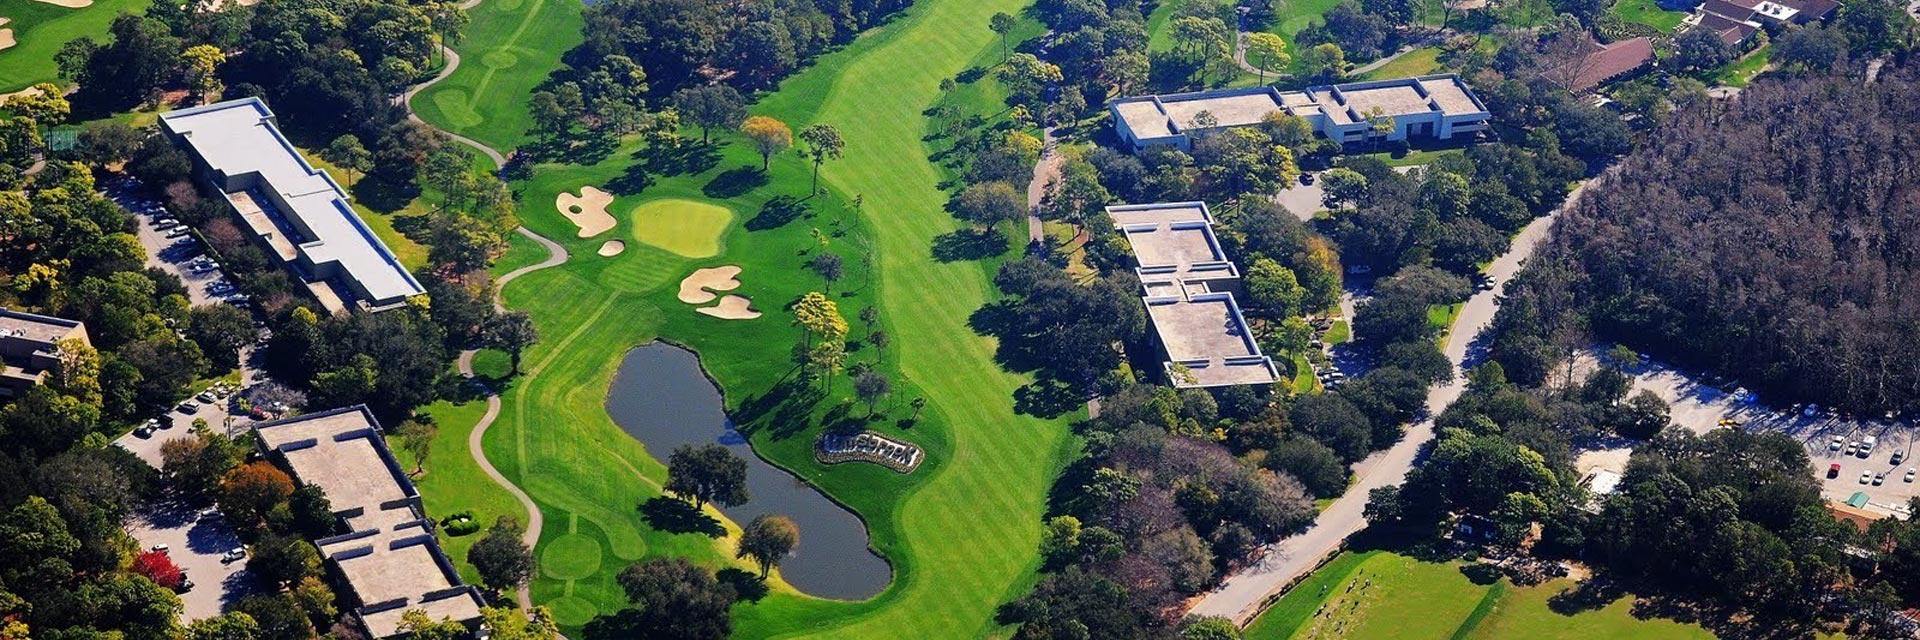 Tampa / St Petersburg, FL: Innisbrook Preferred Stay & Play Package with Copperhead Course from $159 per person, per day!